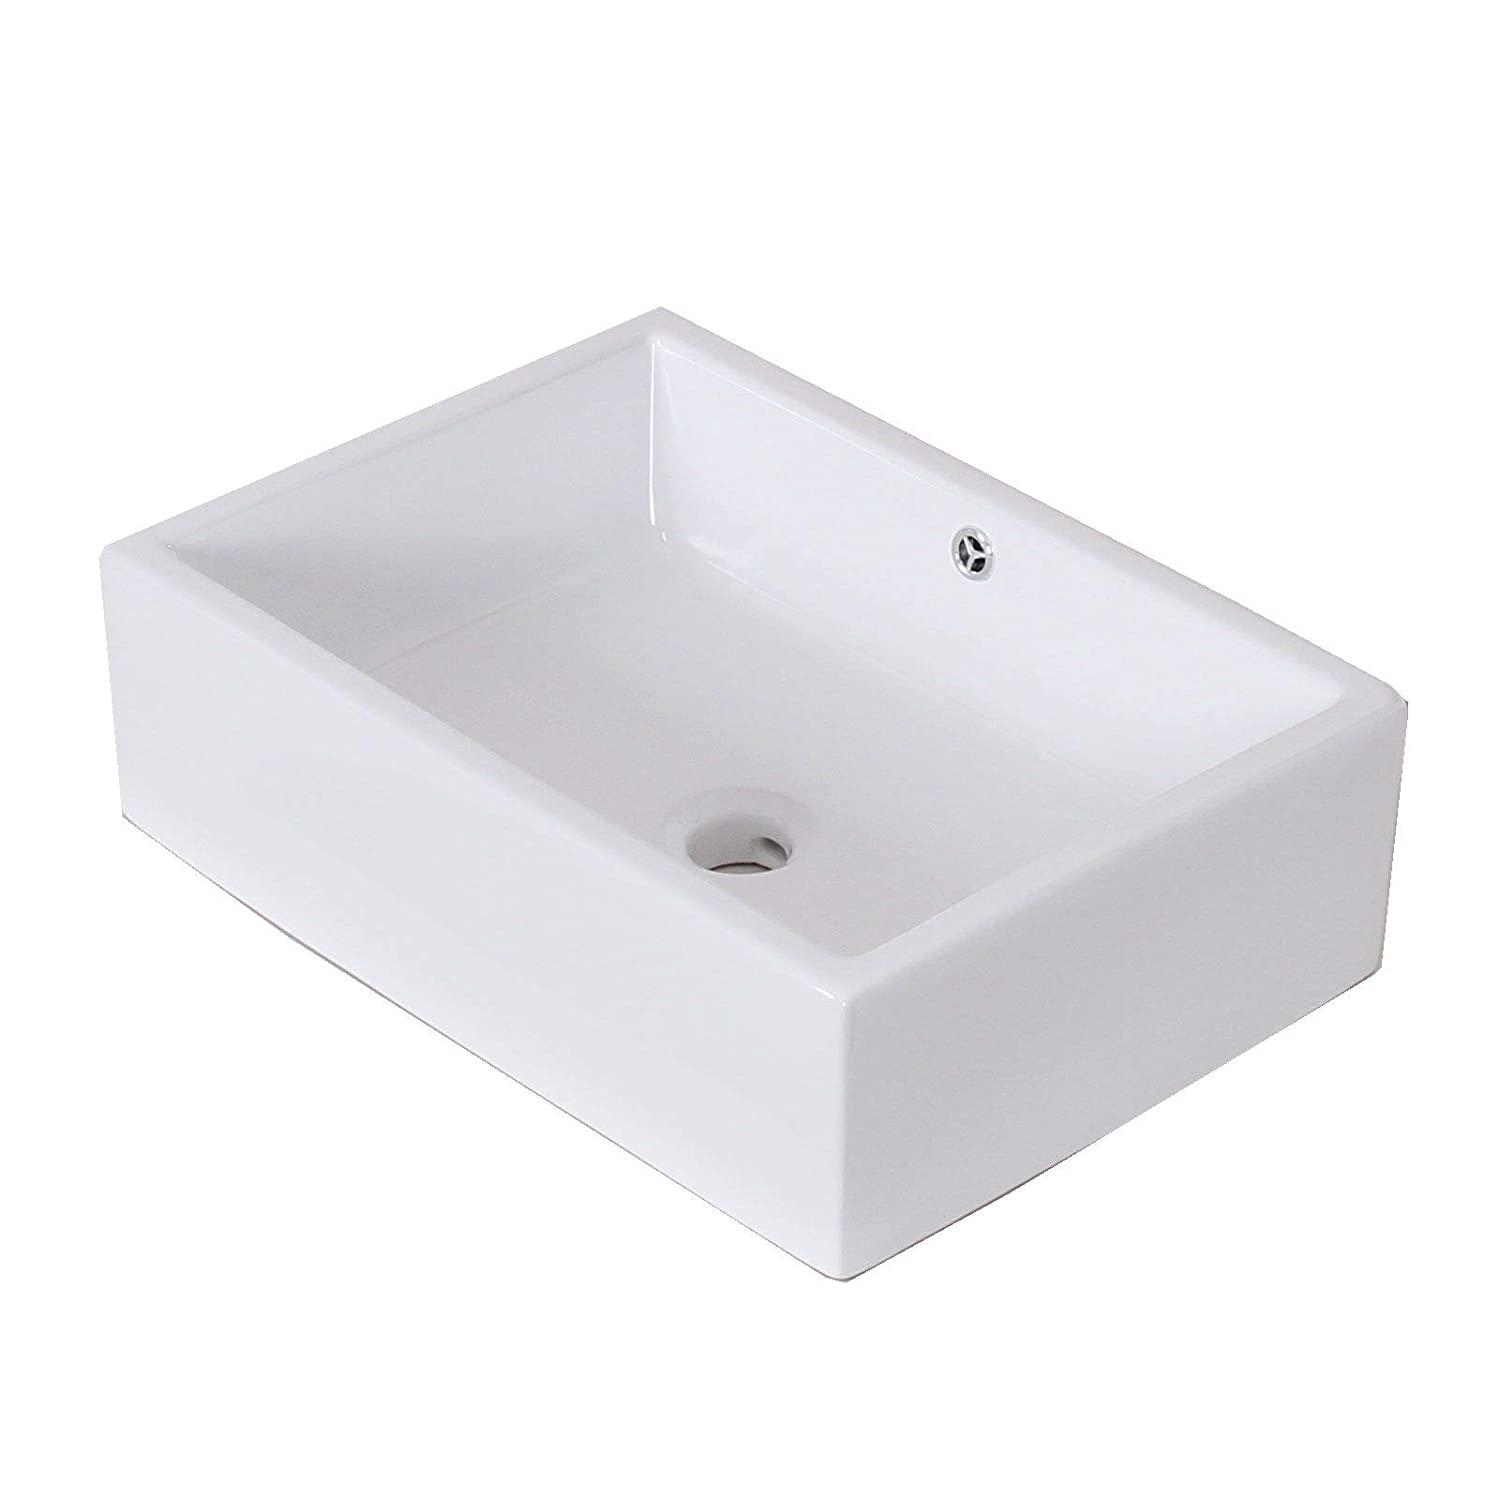 ELITE Bathroom Long Rectangle Thick White Porcelain Ceramic Vessel Sink Chrome Pop Up Drain